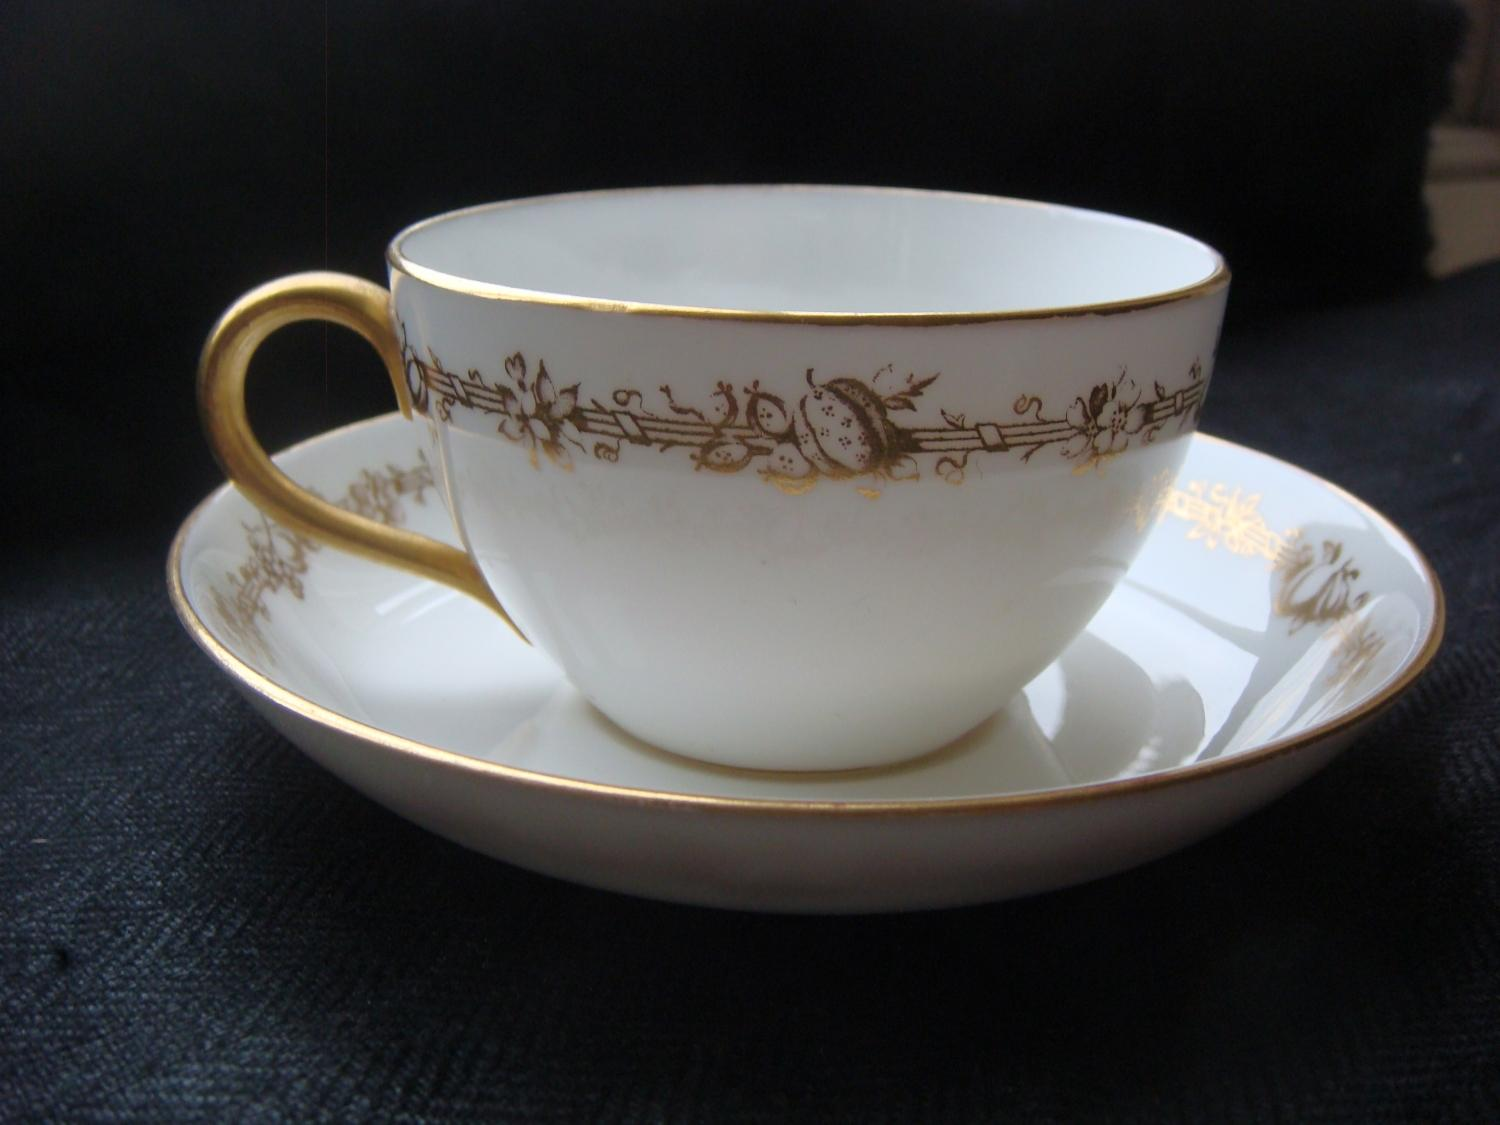 Royal Crown Derby 'Meynell' Cup & Saucer